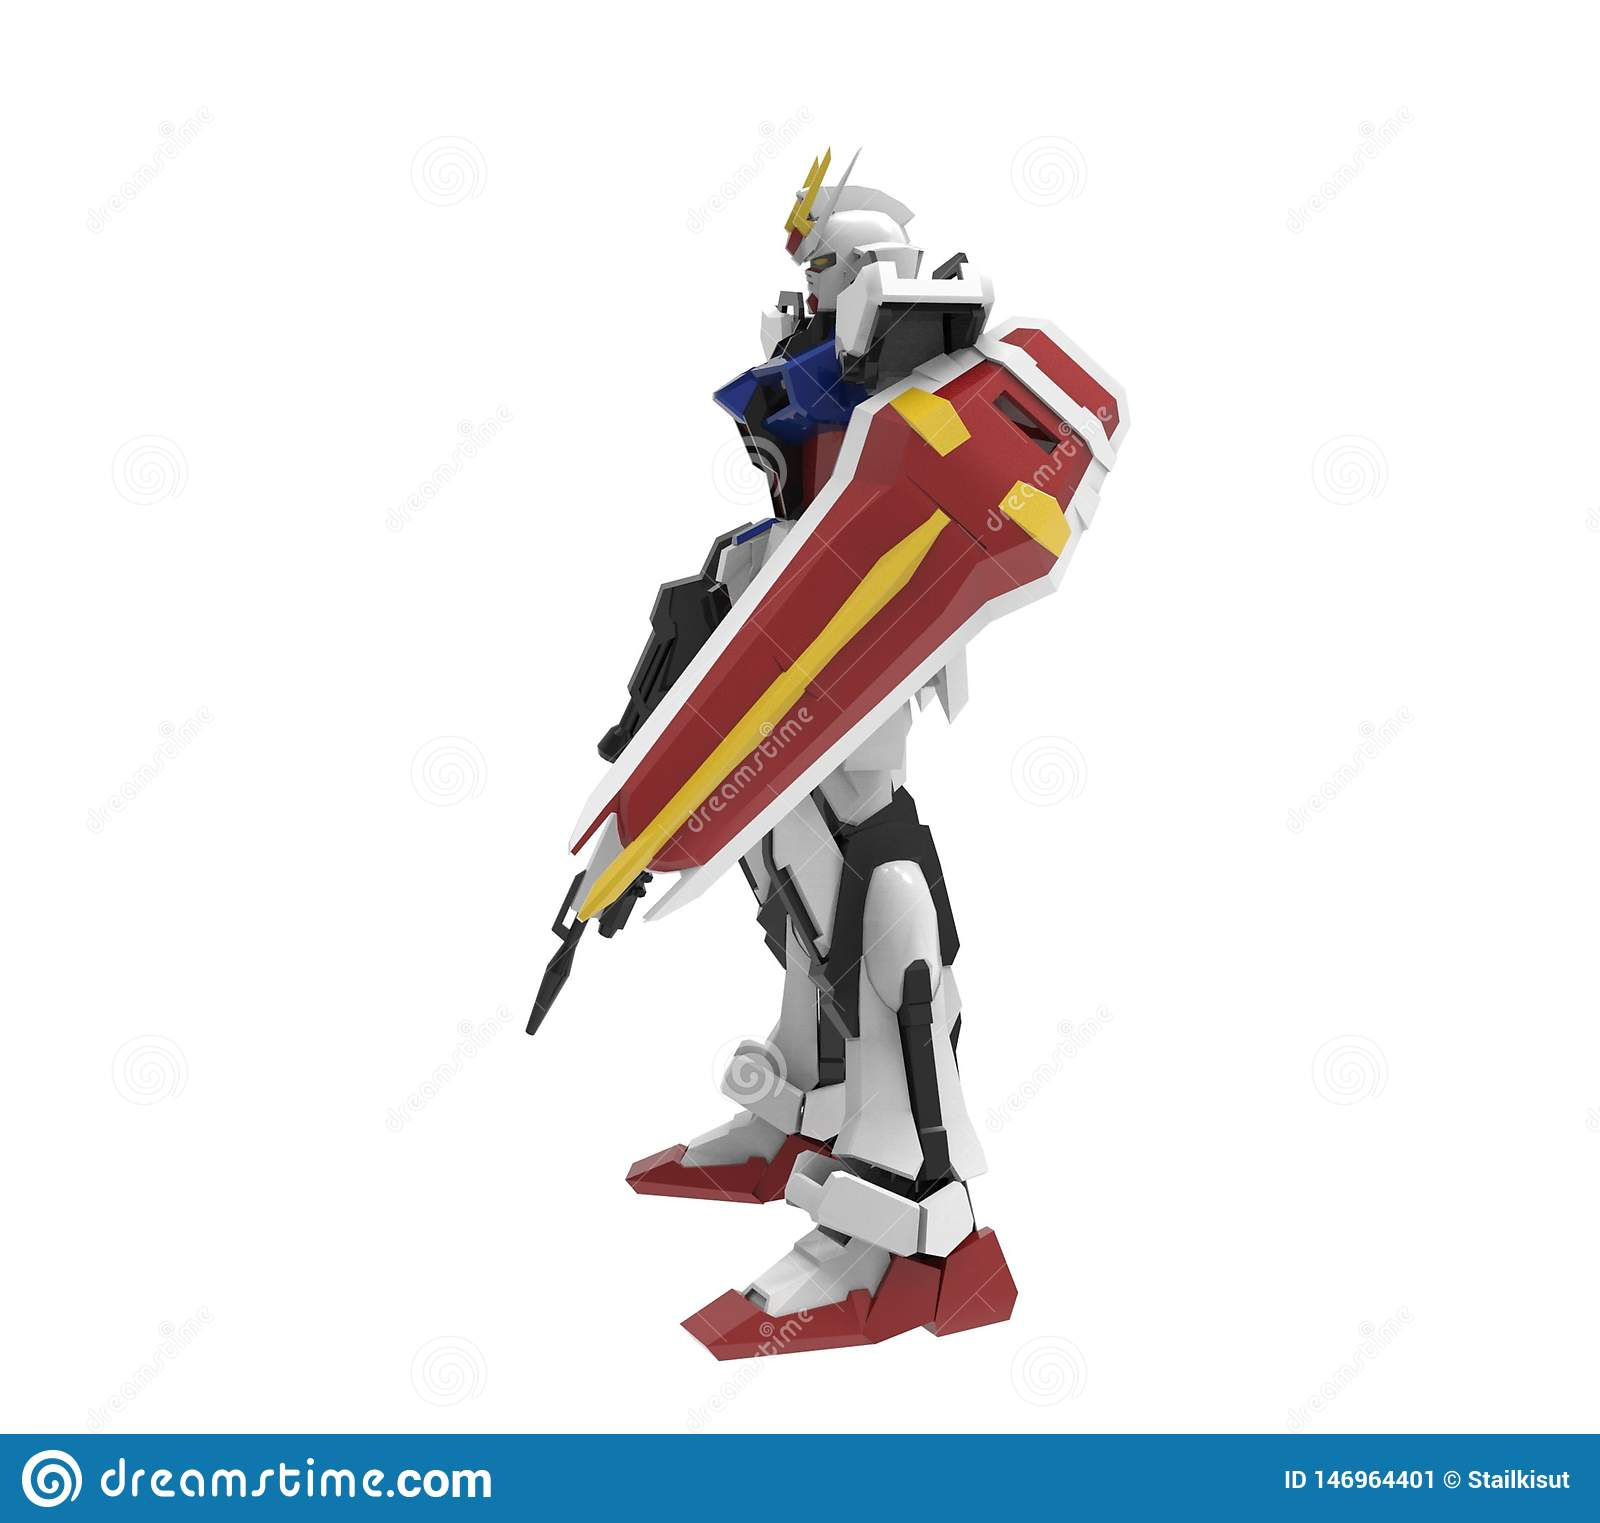 Sci-fi mech soldier standing on a white background. Military futuristic robot with a green and gray color metal.